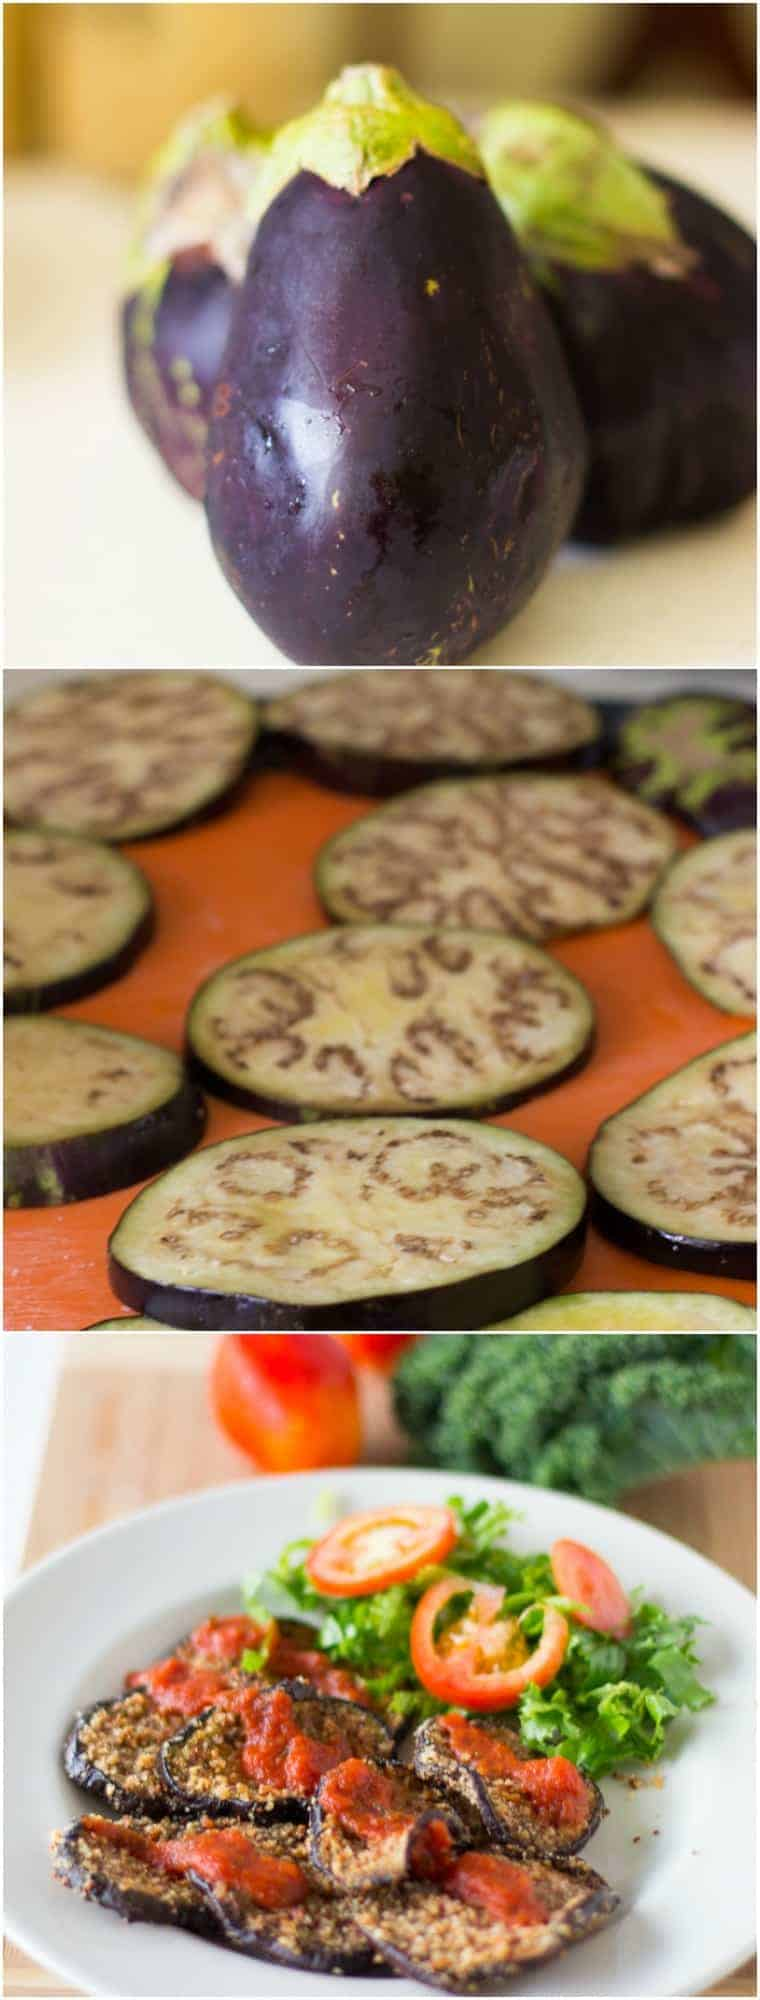 Montage of eggplant being sliced and baked.